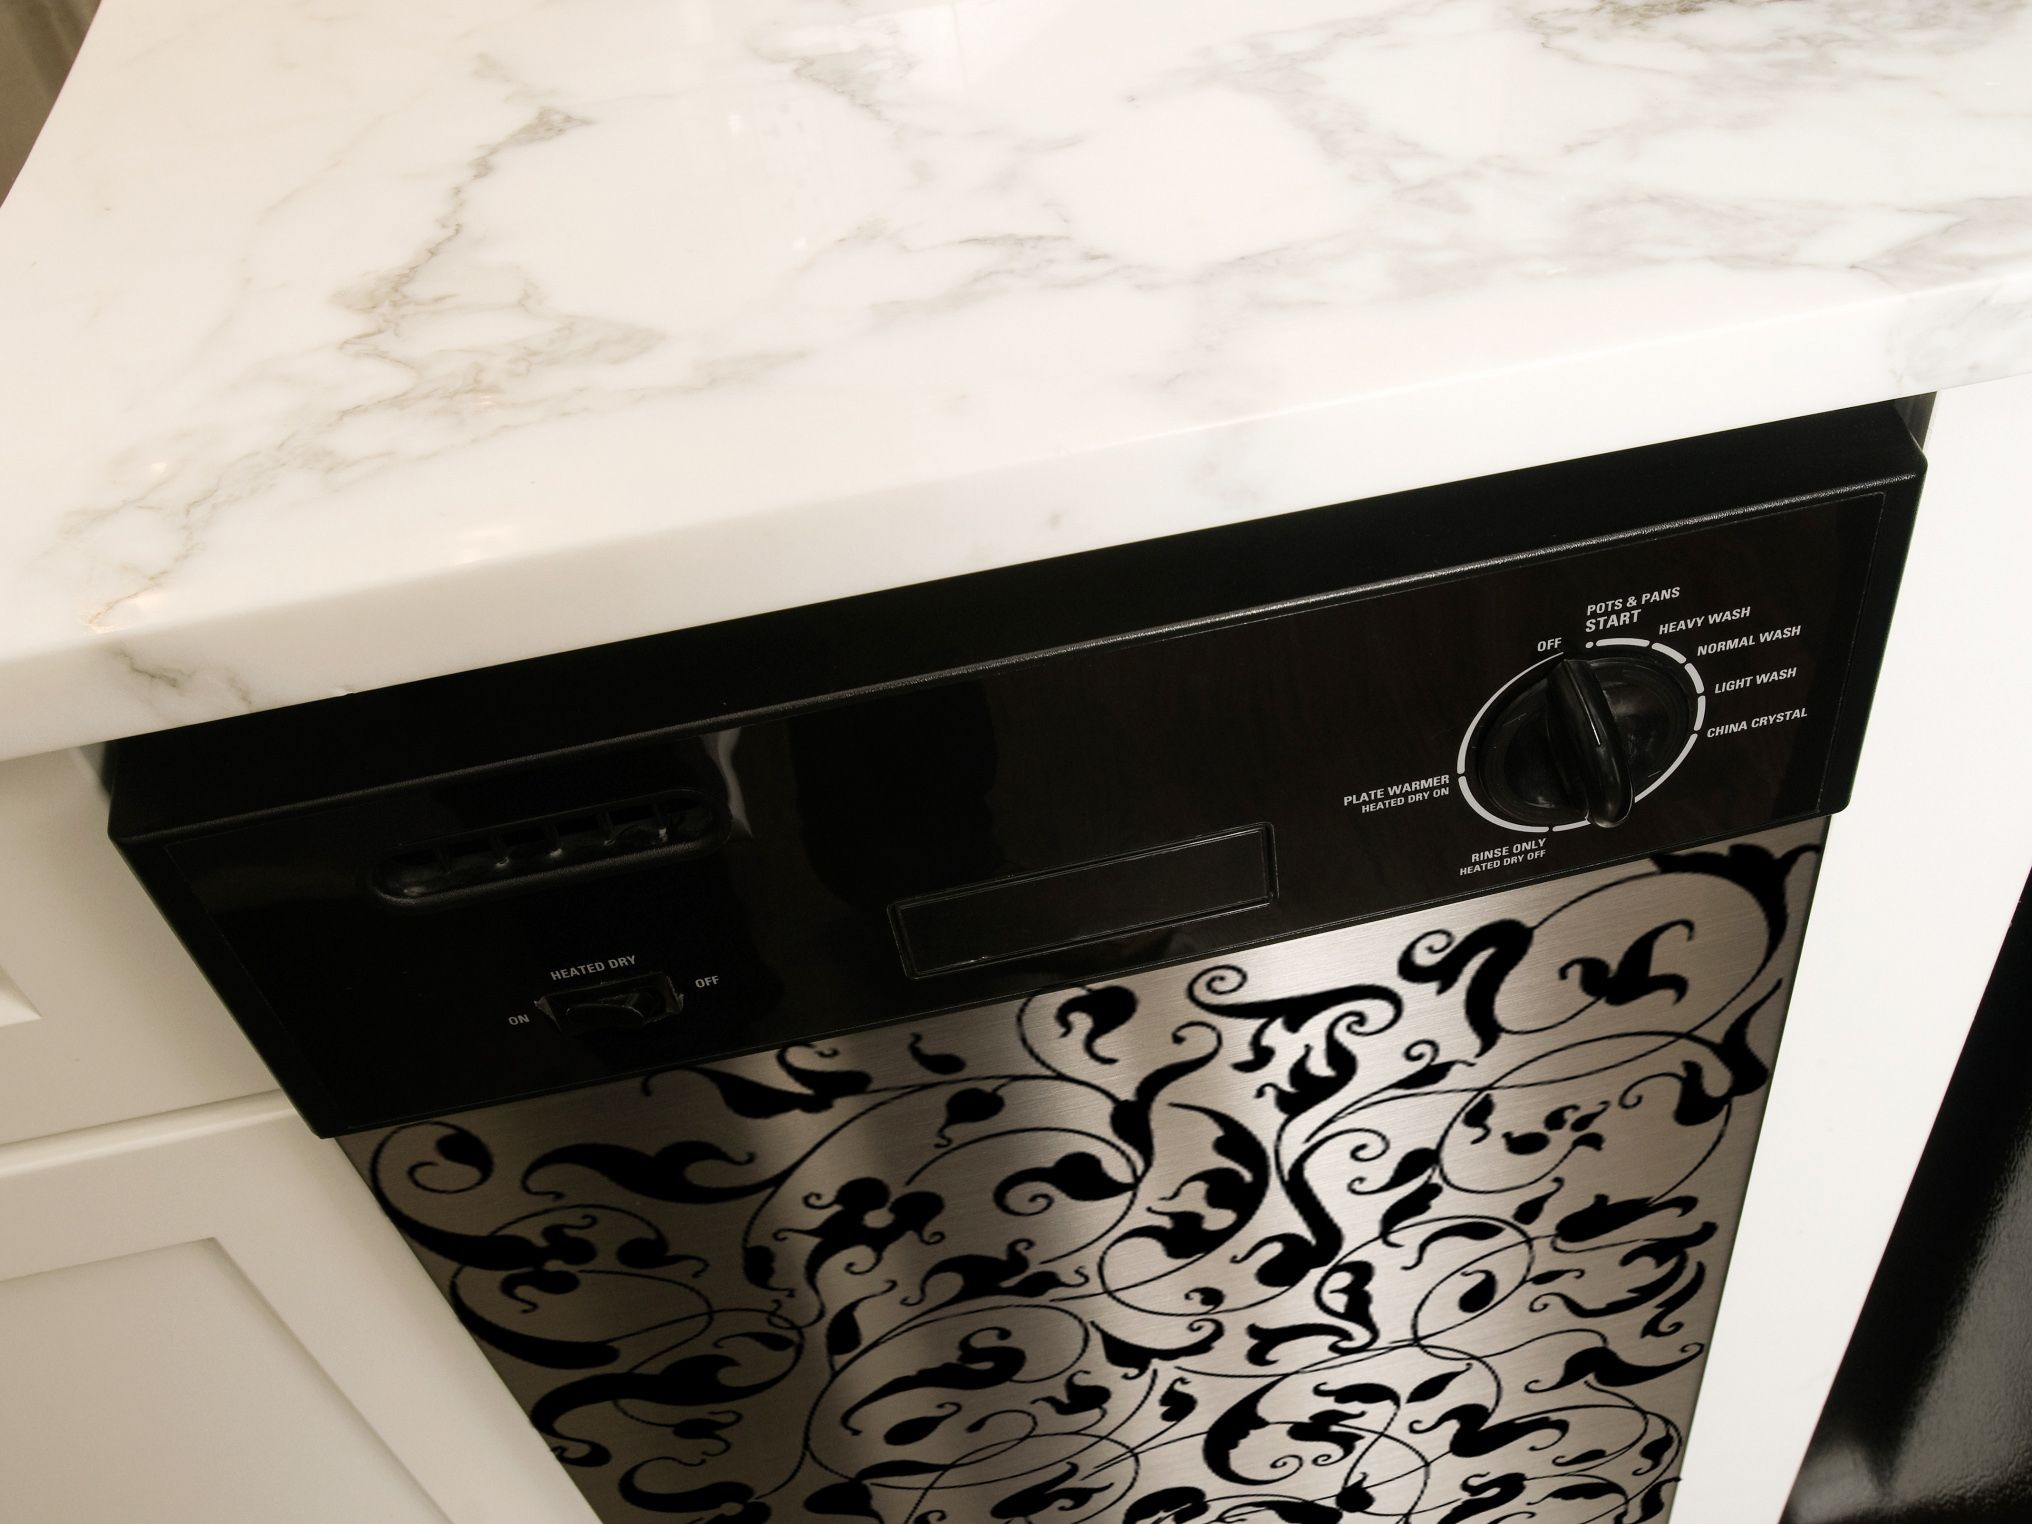 Appliances love decals too kitchens big and dishwashers